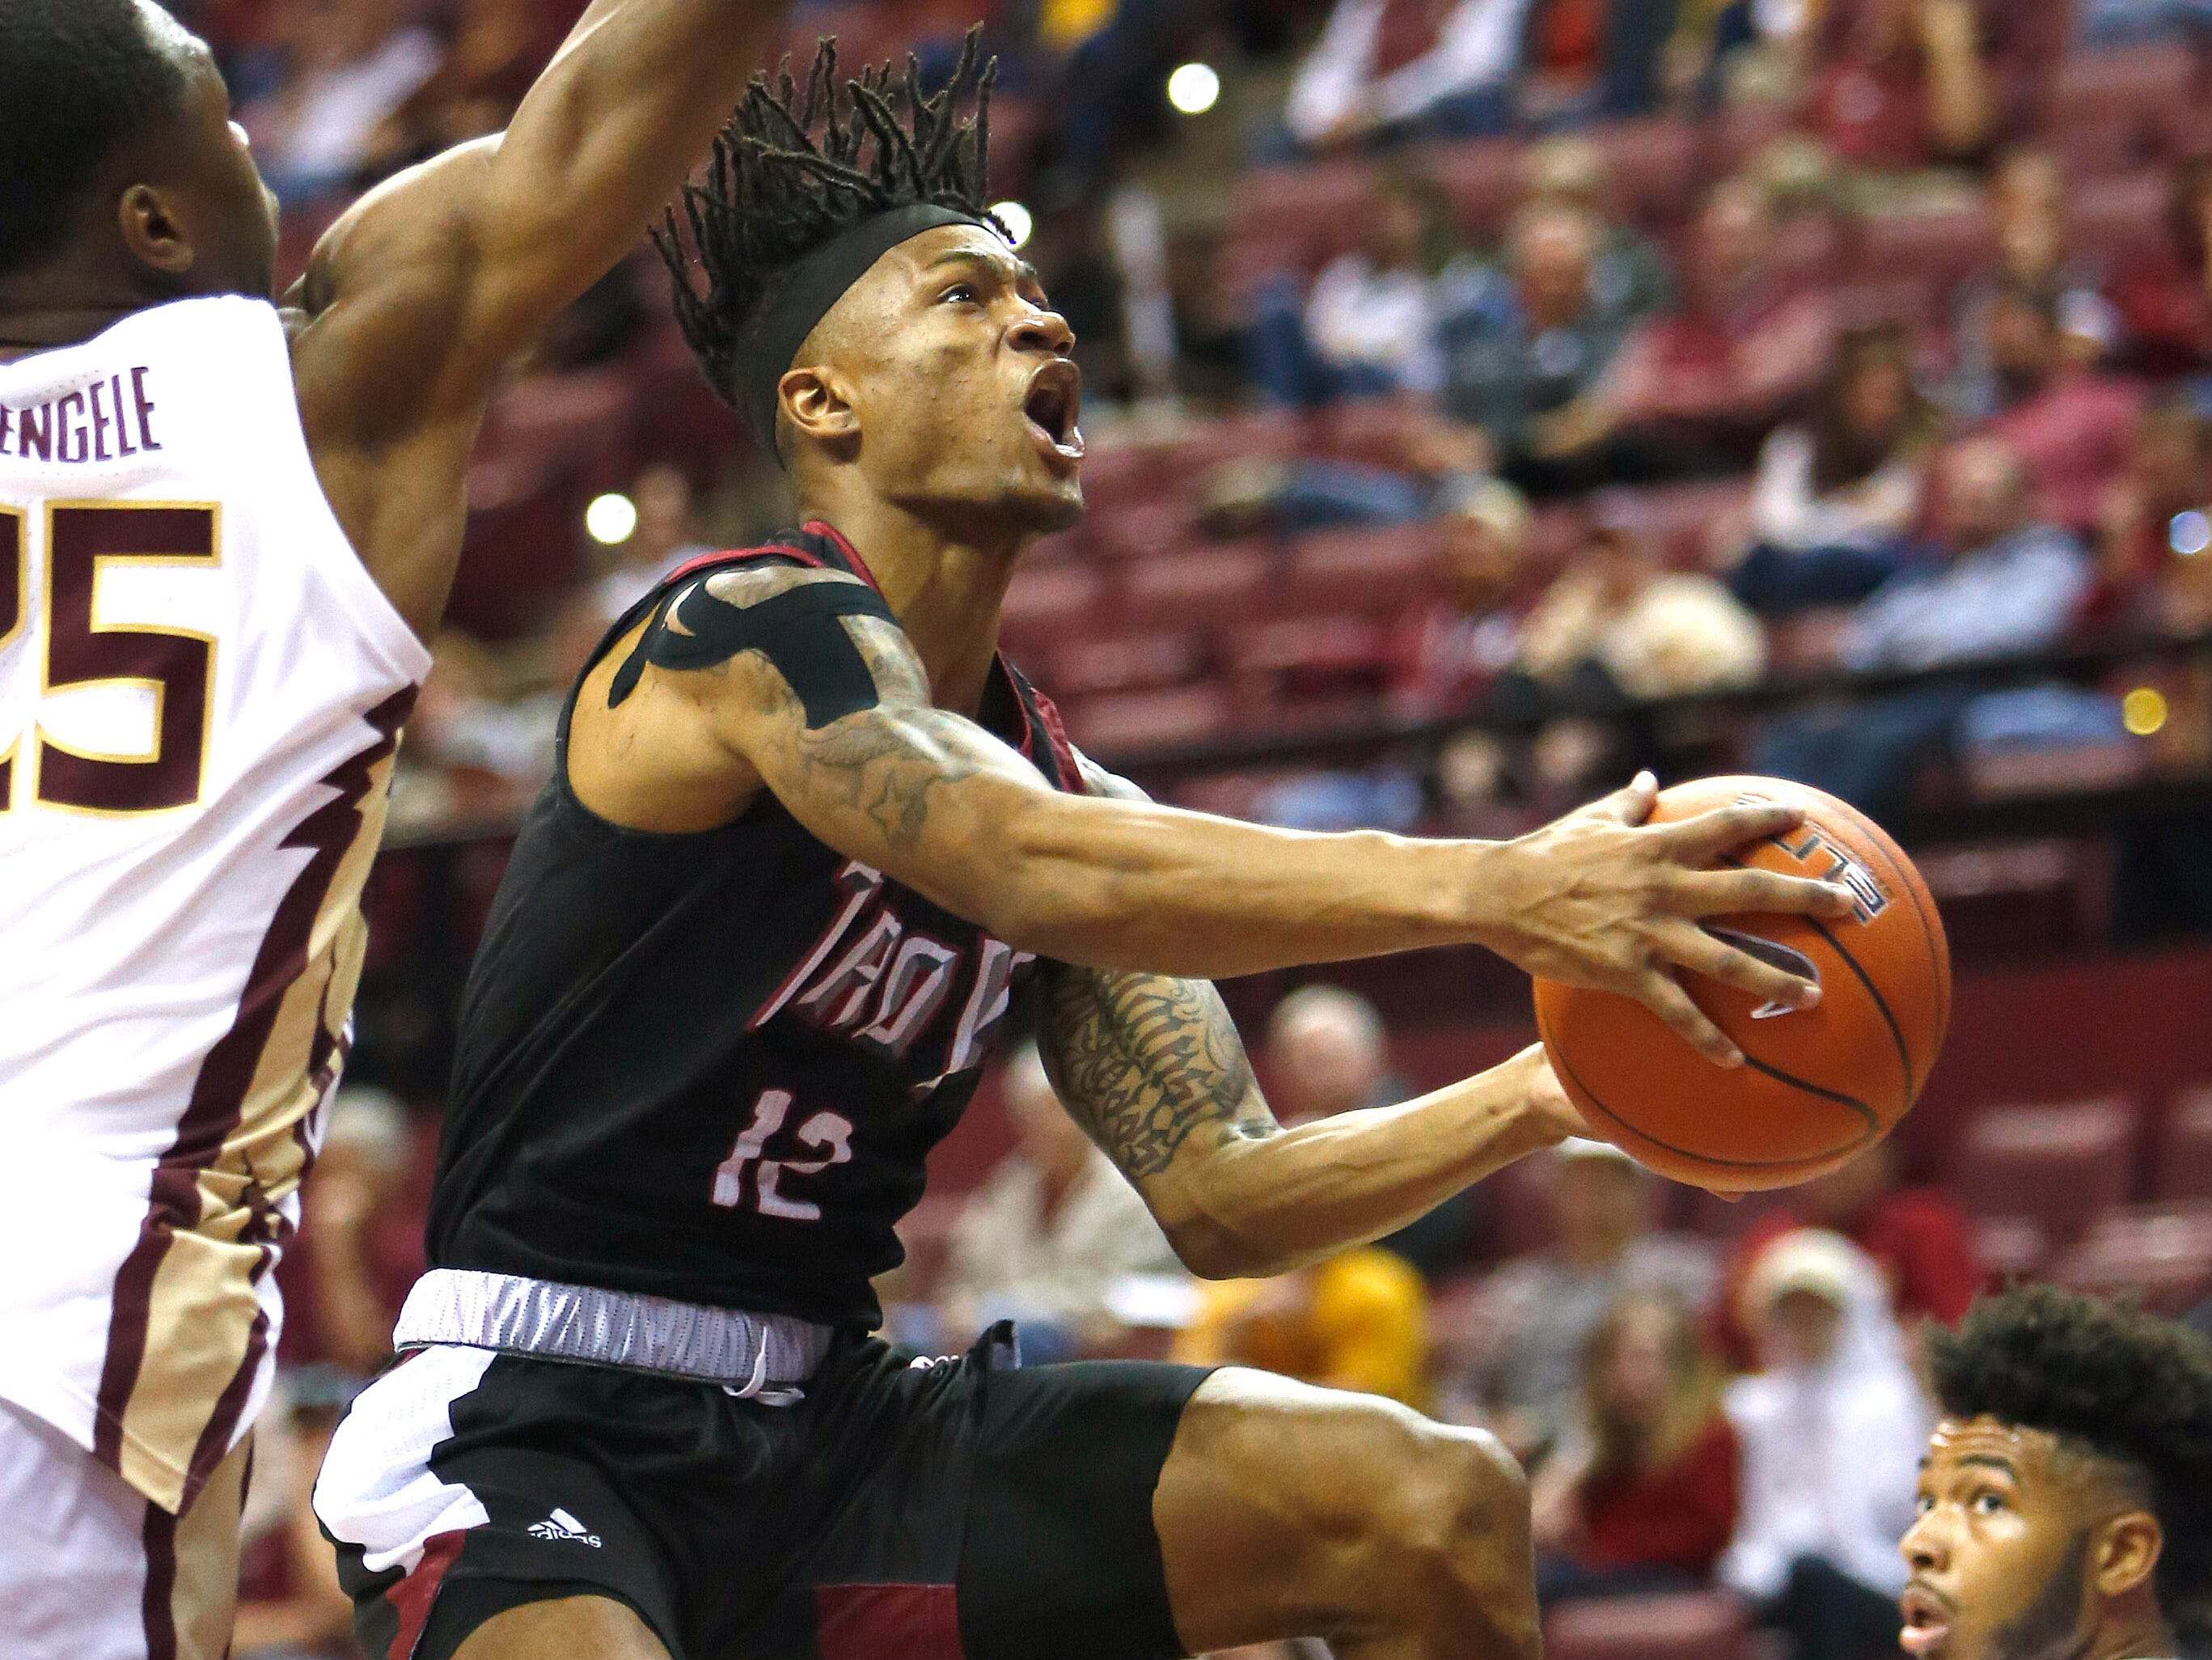 Dec 3, 2018; Tallahassee, FL, USA; Troy Trojans guard Charles Norman (12) drives to the hoop against the Florida State Seminoles at Donald L. Tucker Center during the second half. Mandatory Credit: Glenn Beil-USA TODAY Sports